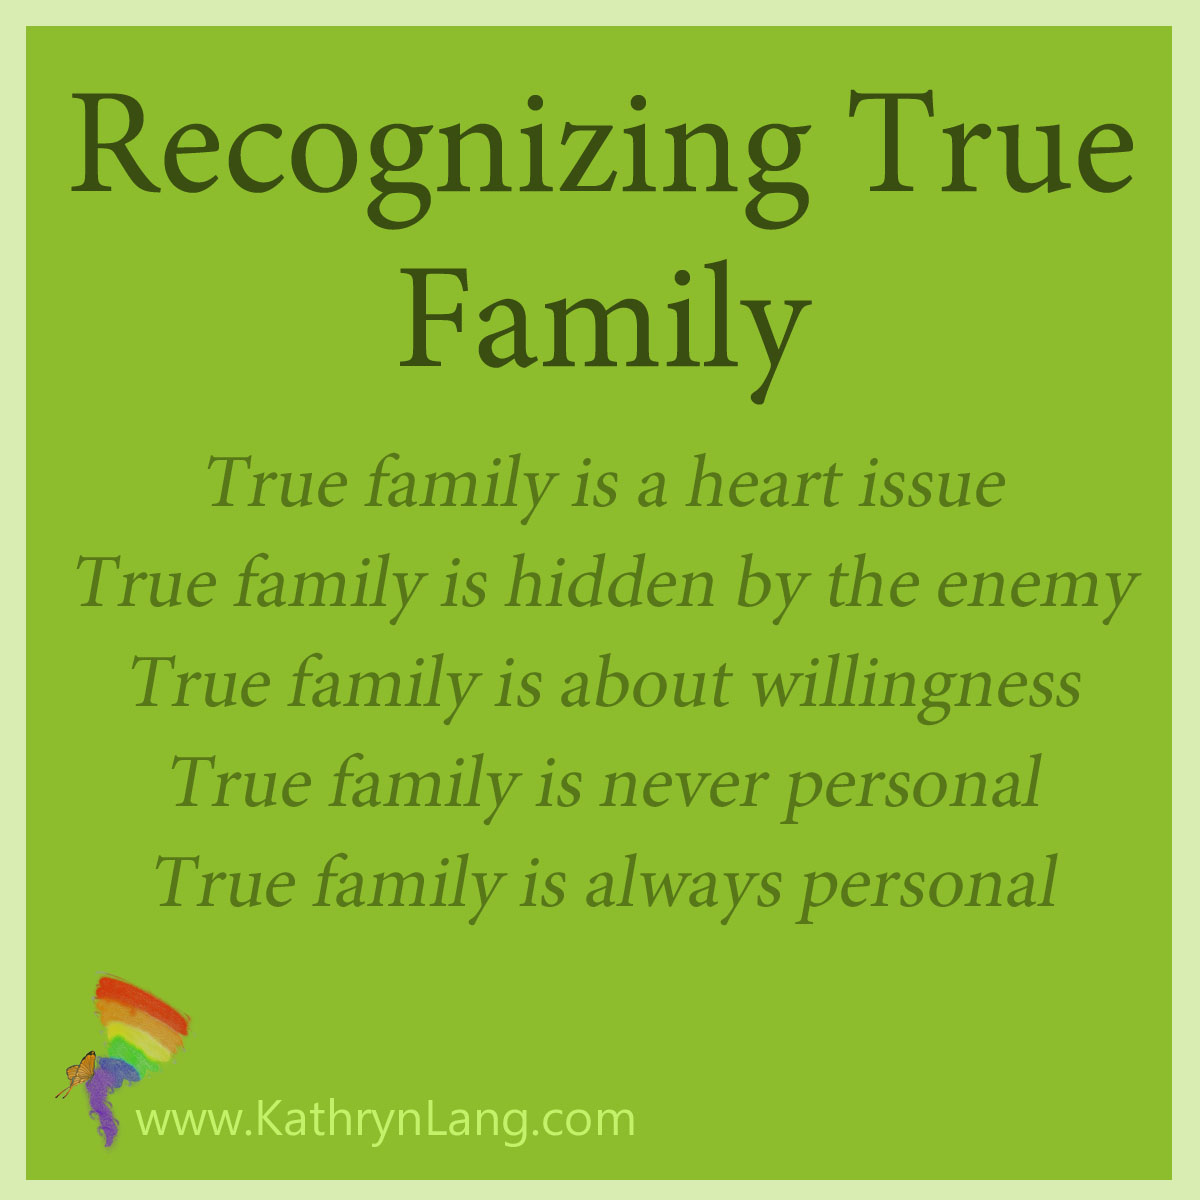 Recognizing True Family